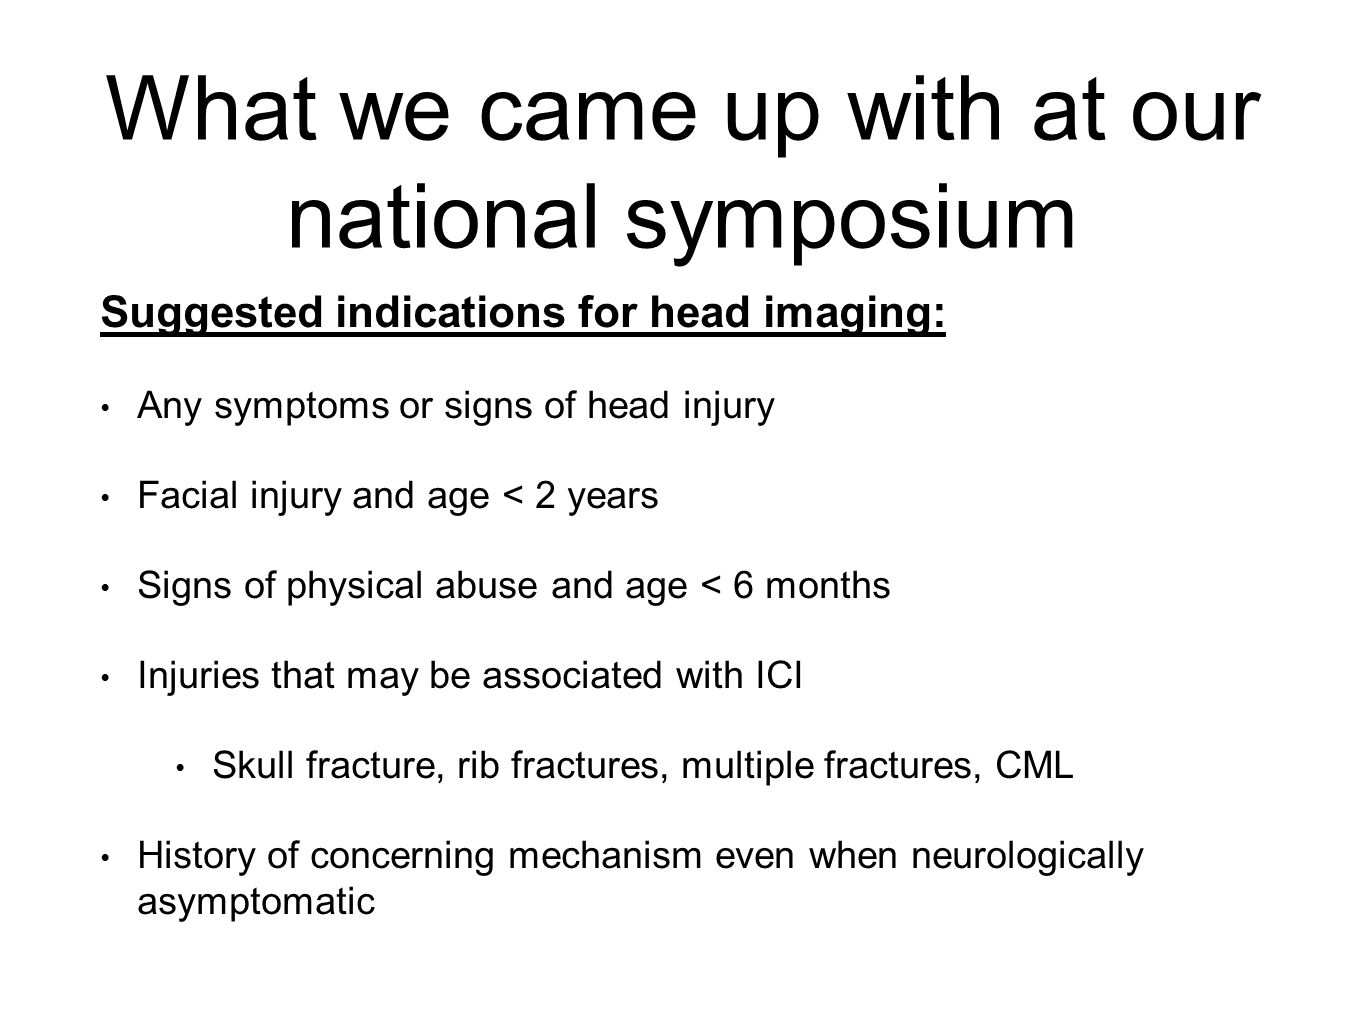 What we came up with at our national symposium Suggested indications for head imaging: Any symptoms or signs of head injury Facial injury and age < 2